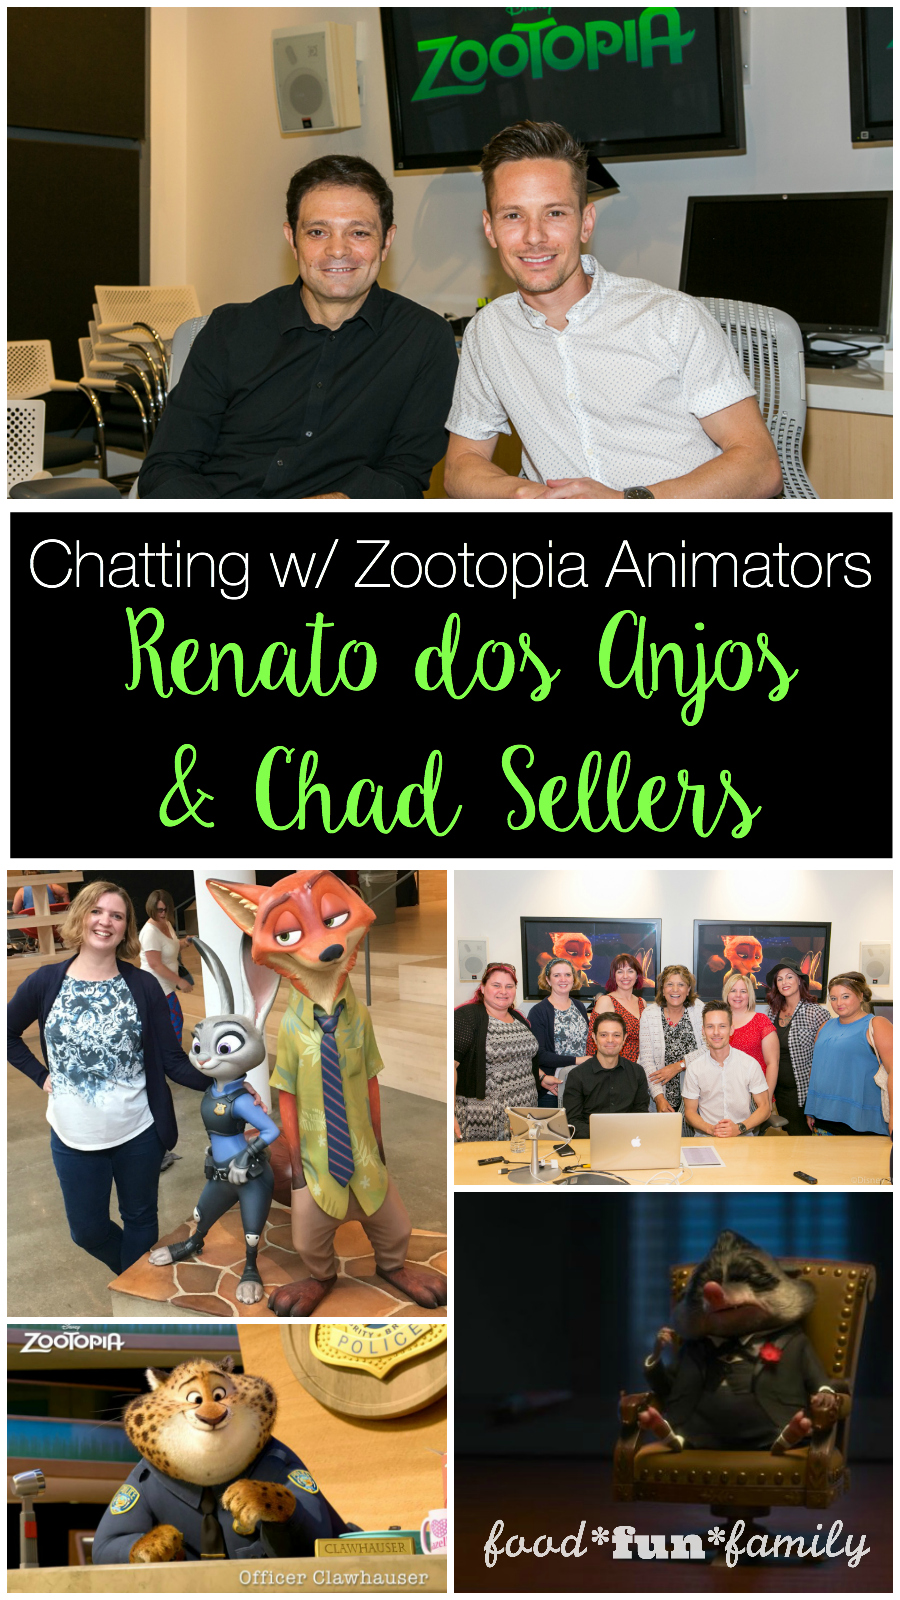 Chatting with Zootopia Animators Renato dos Ajos and Chad Sellers